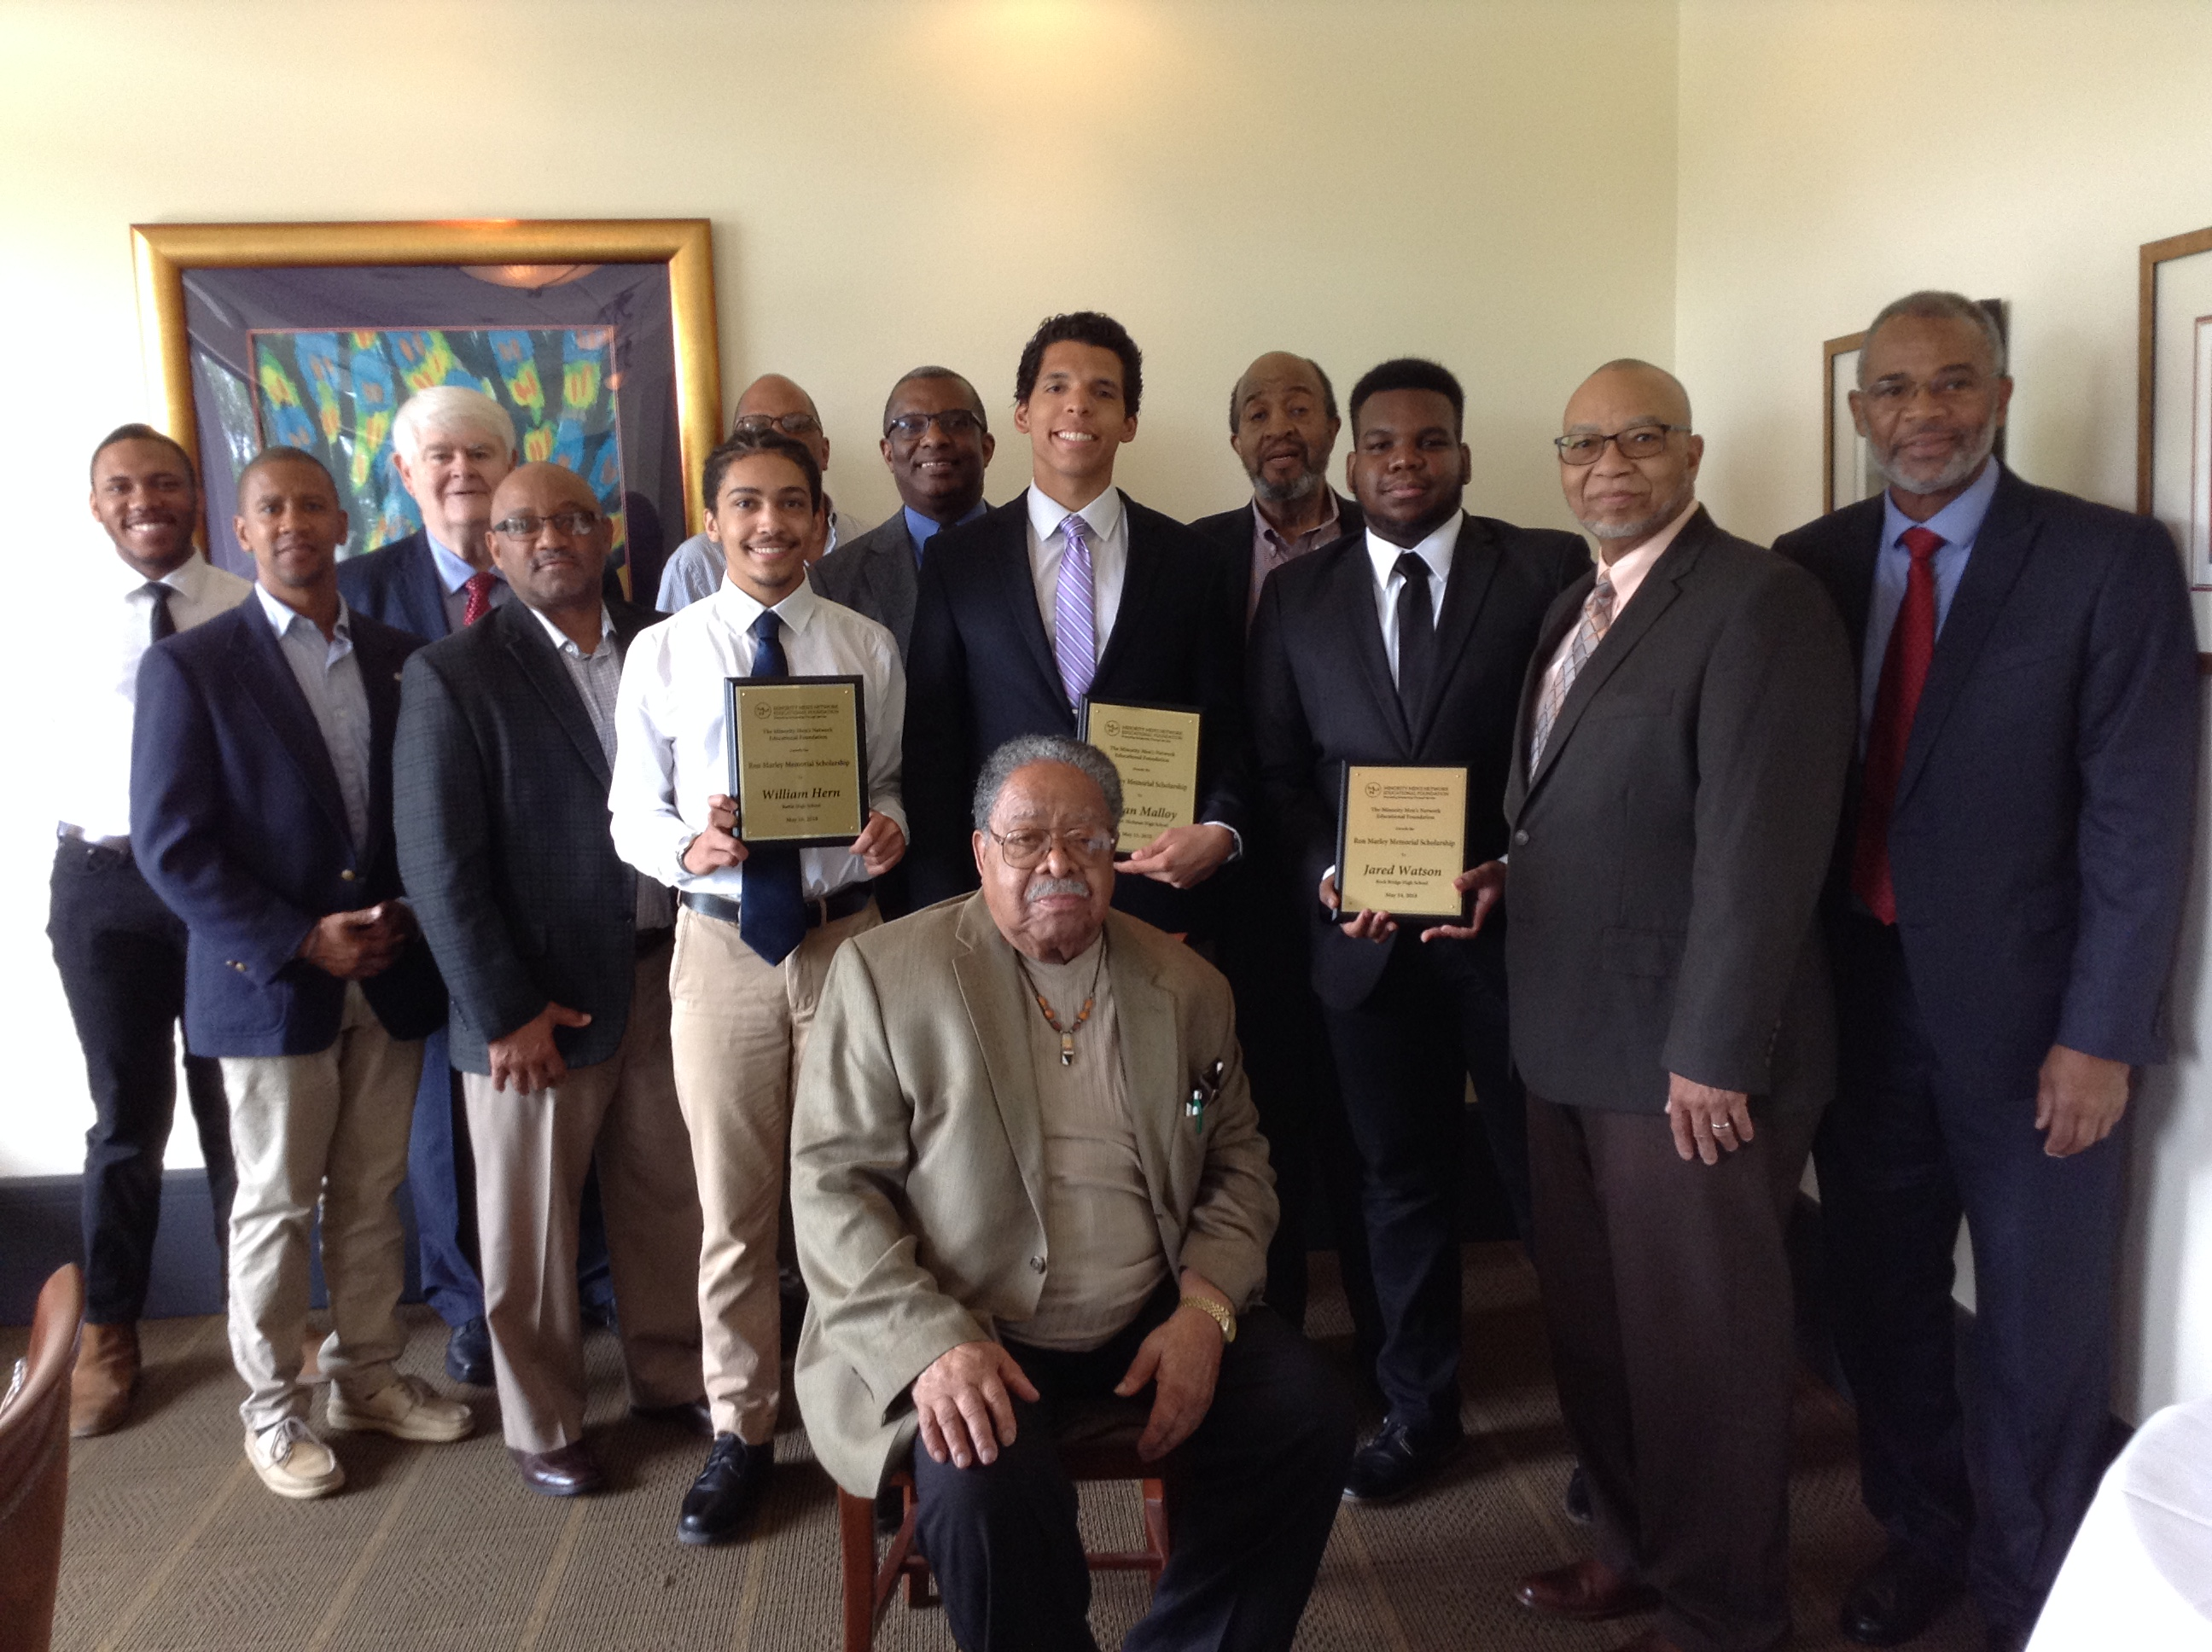 Minority Men's Network Educational Foundation